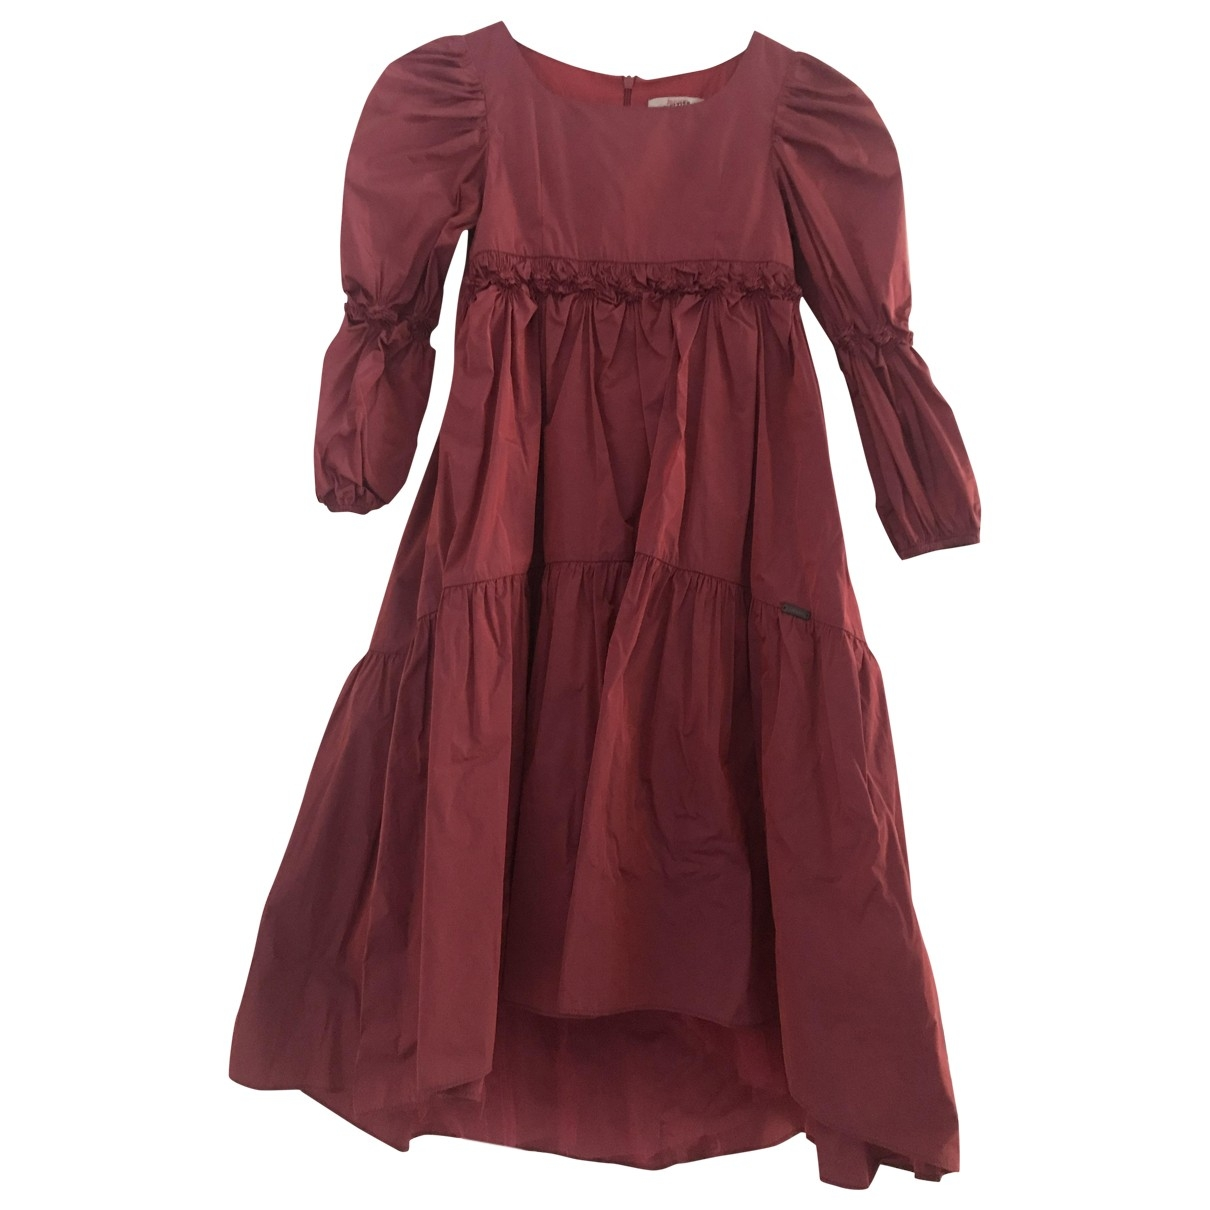 Gaultier Junior \N Burgundy dress for Kids 8 years - up to 128cm FR